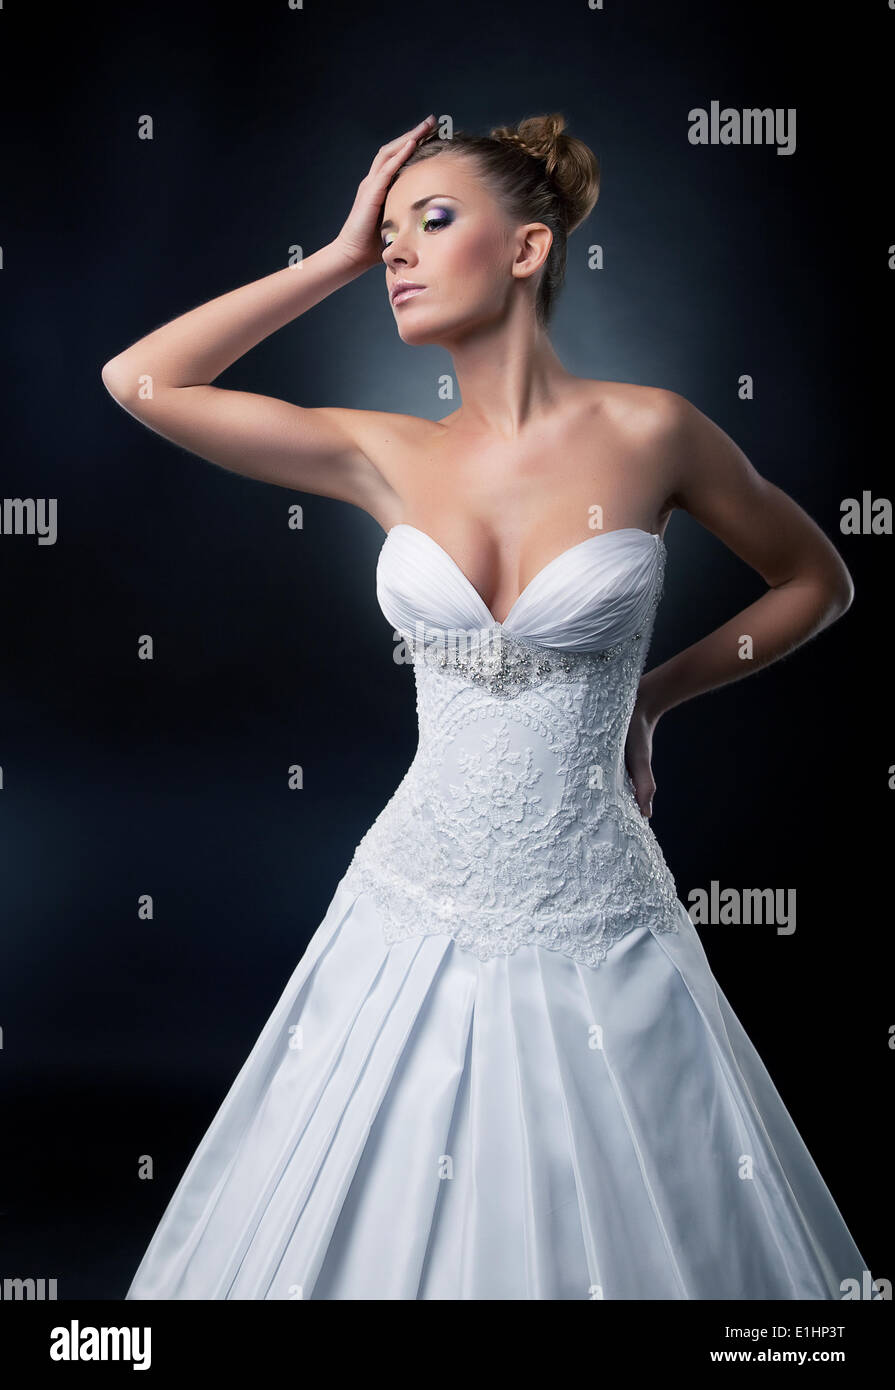 Tempting bride blond hair female fashion model posing in studio. Series of photos - Stock Image